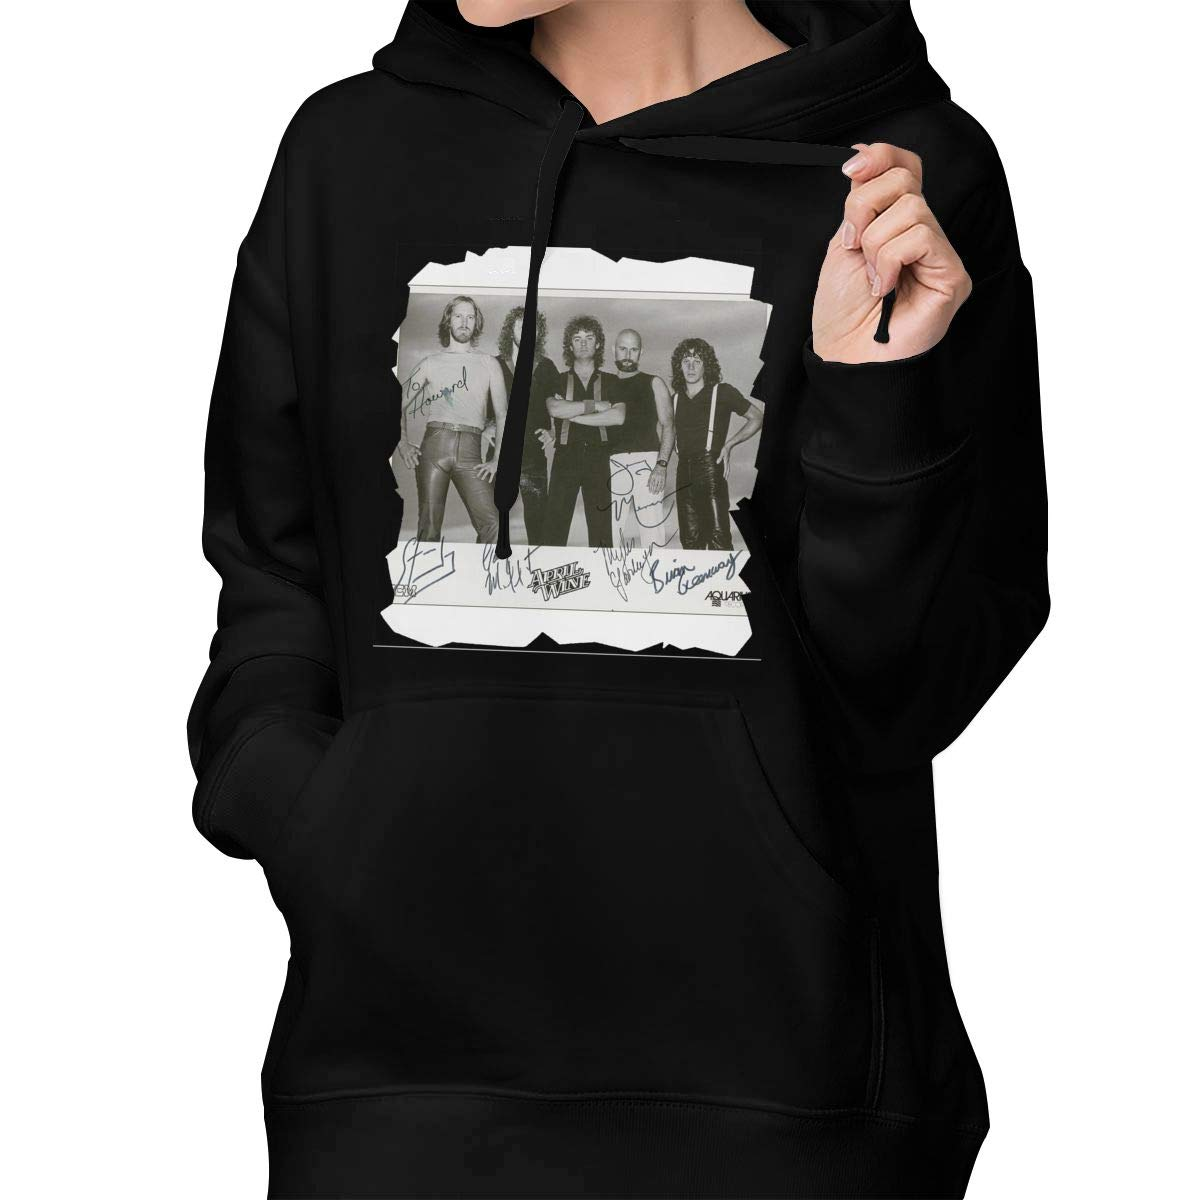 YoungerMan Womens Color Name Sweatshirt Hoodie Comfortable April Wine Fashion Cotton Pullover Hooded Shirts with Pocket M